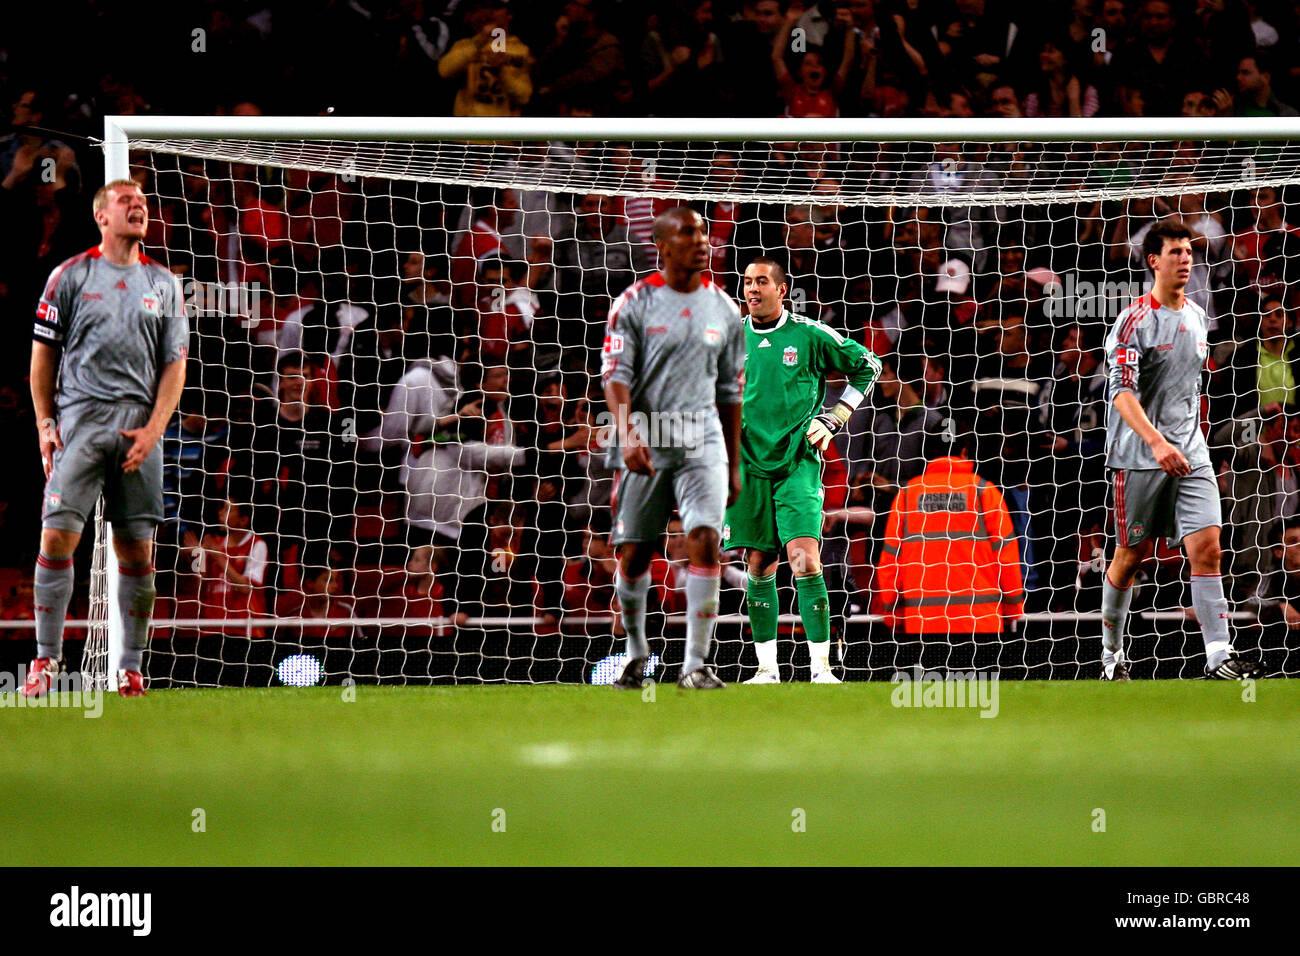 Soccer - FA Cup - Final - First Leg - Arsenal v Liverpool - Emirates Stadium - Stock Image